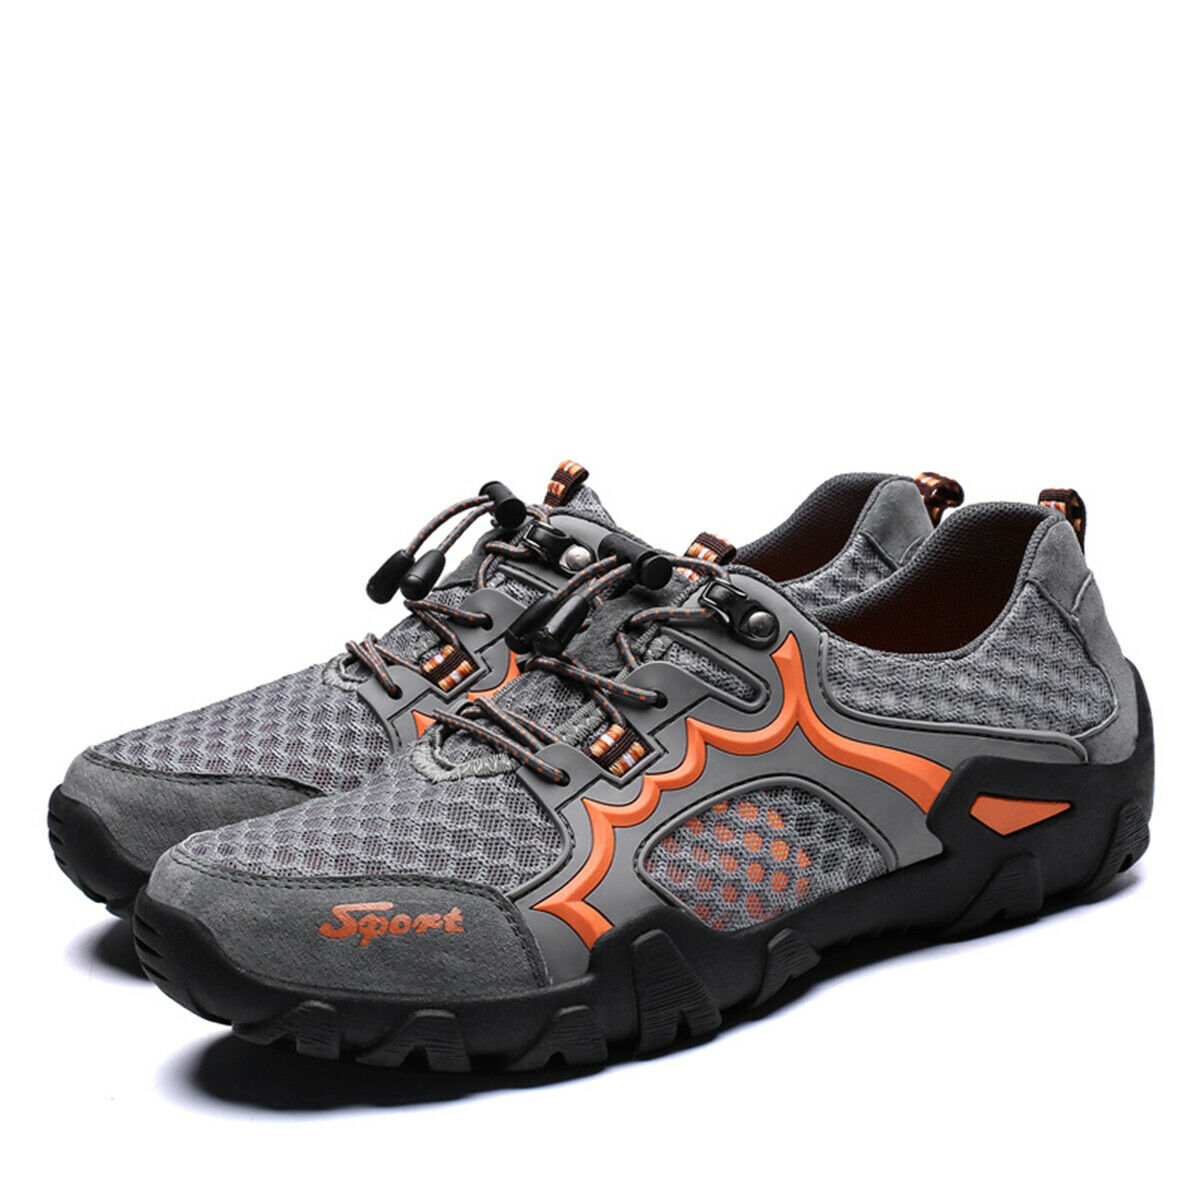 Fashion Athletic Mens Hiking Running Mountain Climbing Low Top Non-slip shoes US